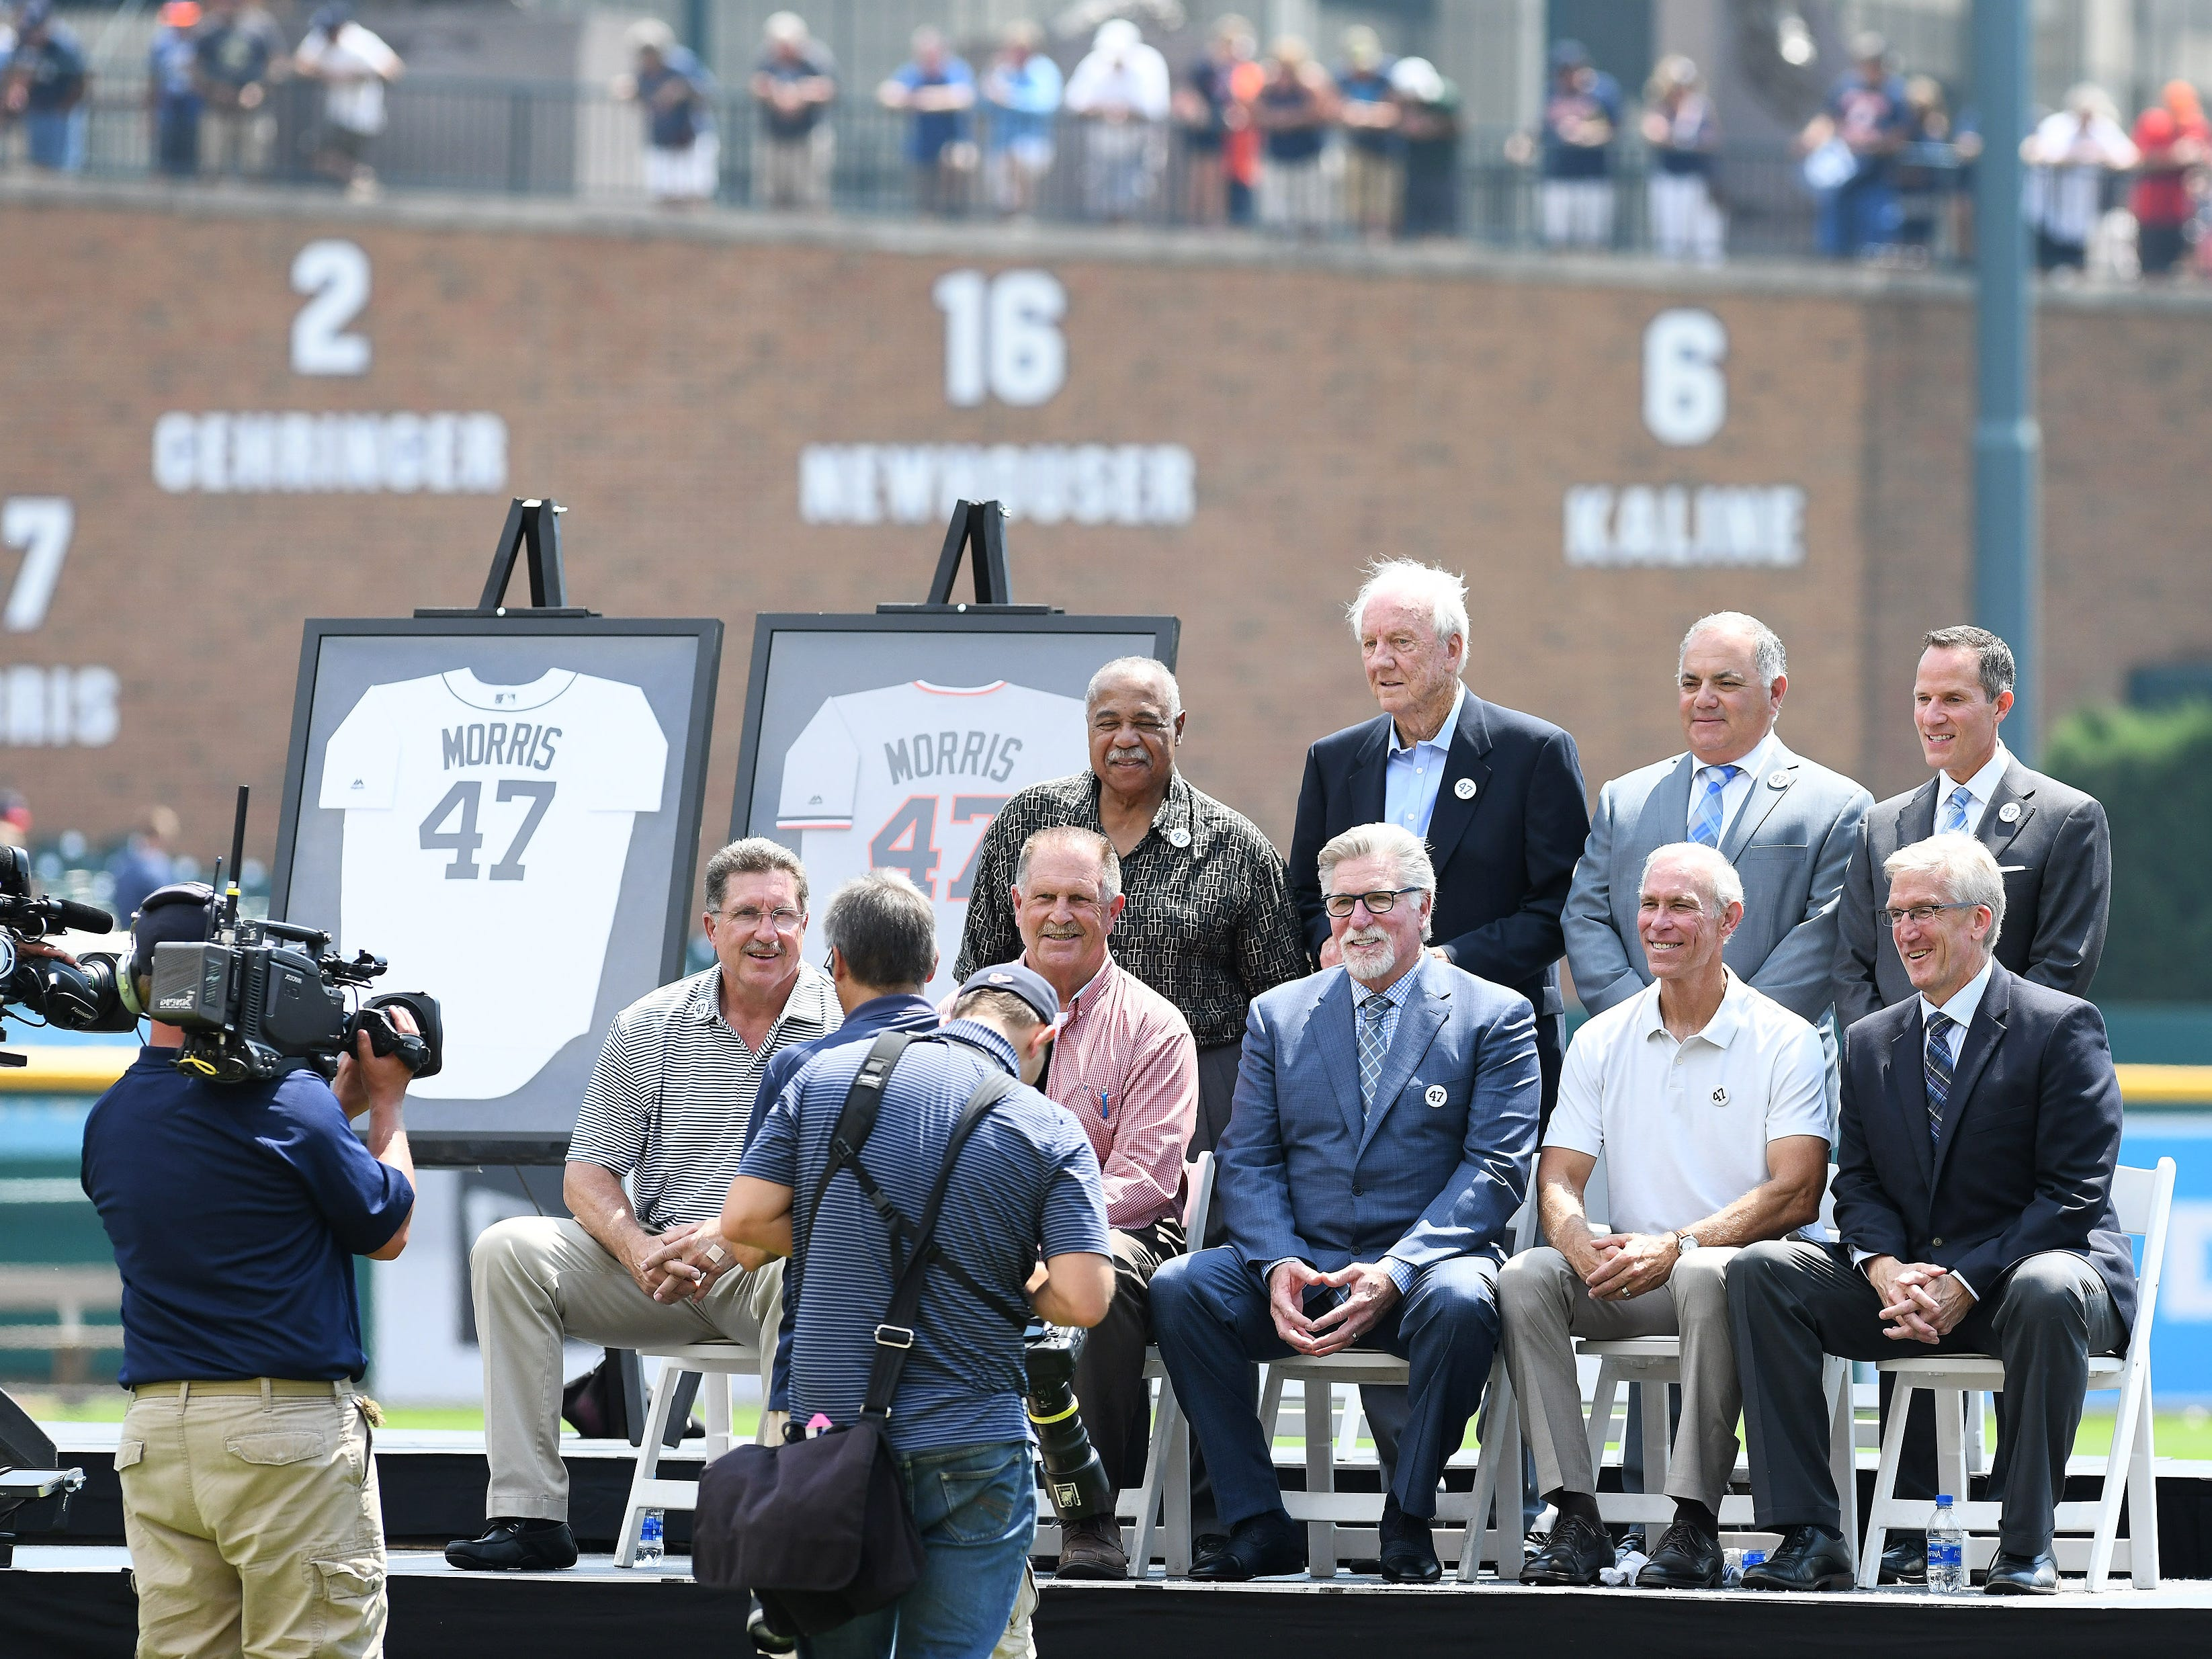 Photographers get a group photo of the dignitaries on the stage with Jack Morris, center seated, after the special pregame ceremony.